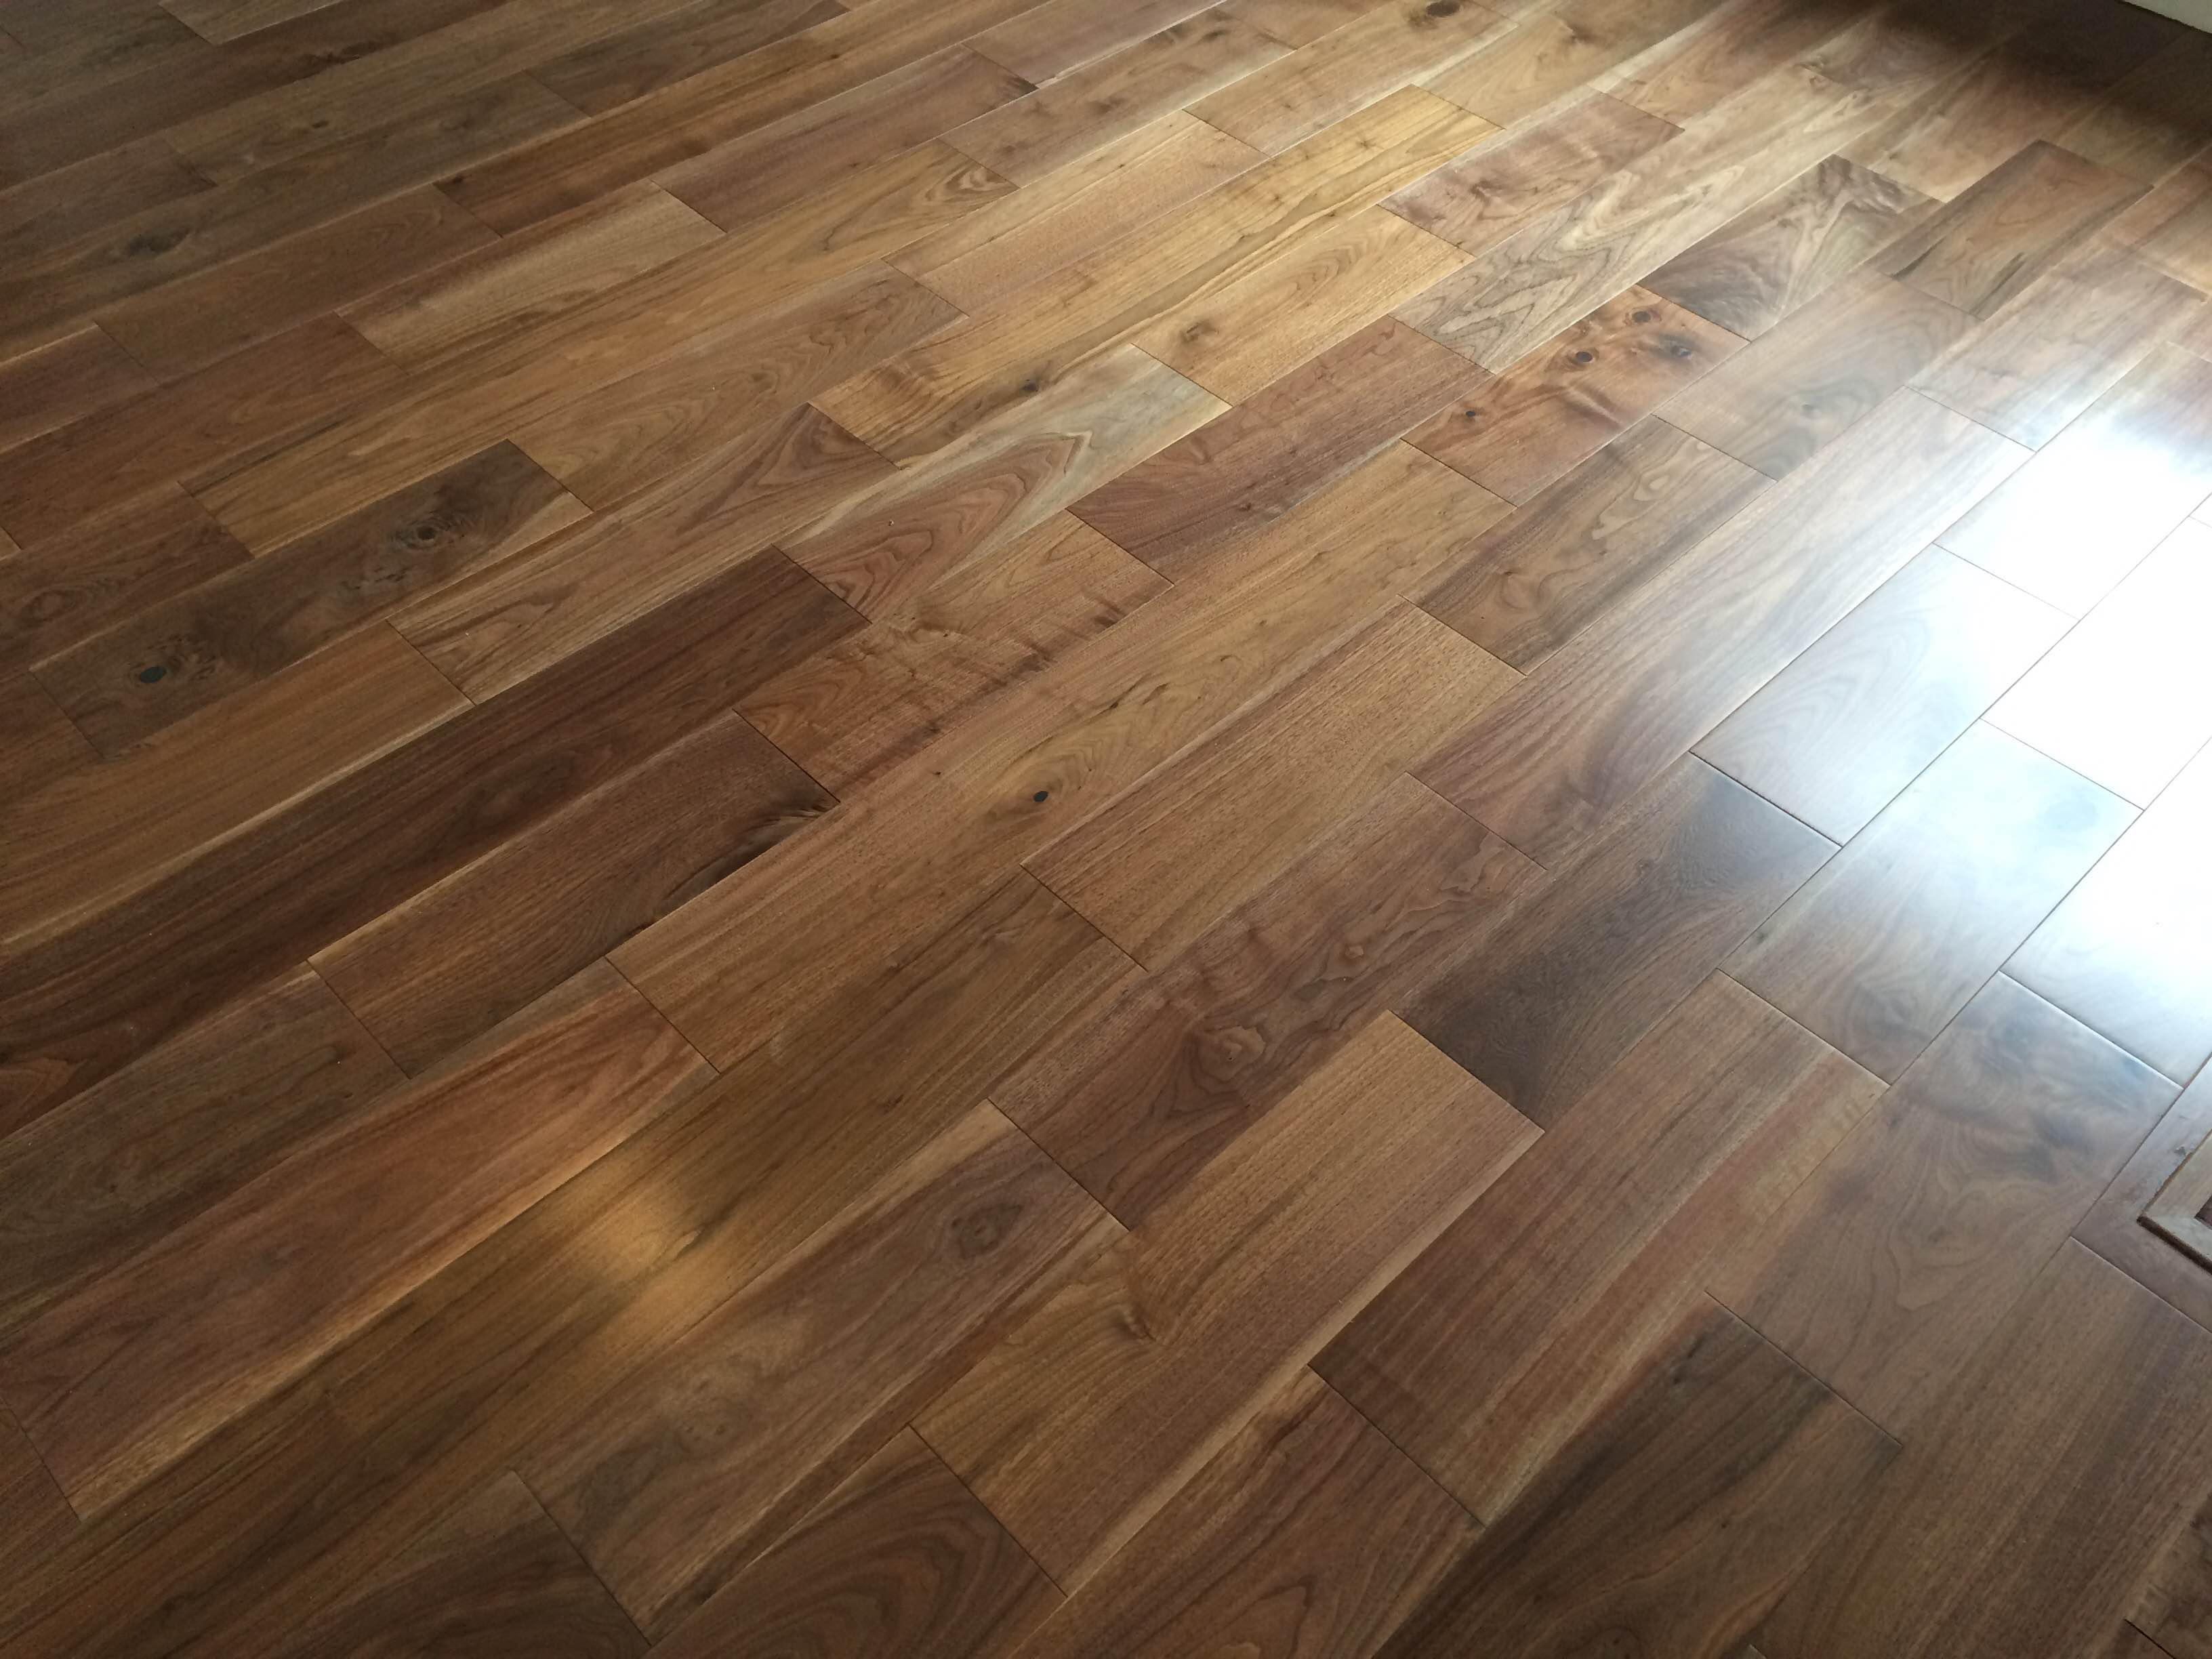 gaujara prefinished guajara moabi flooring engineered hardwood floor wood american